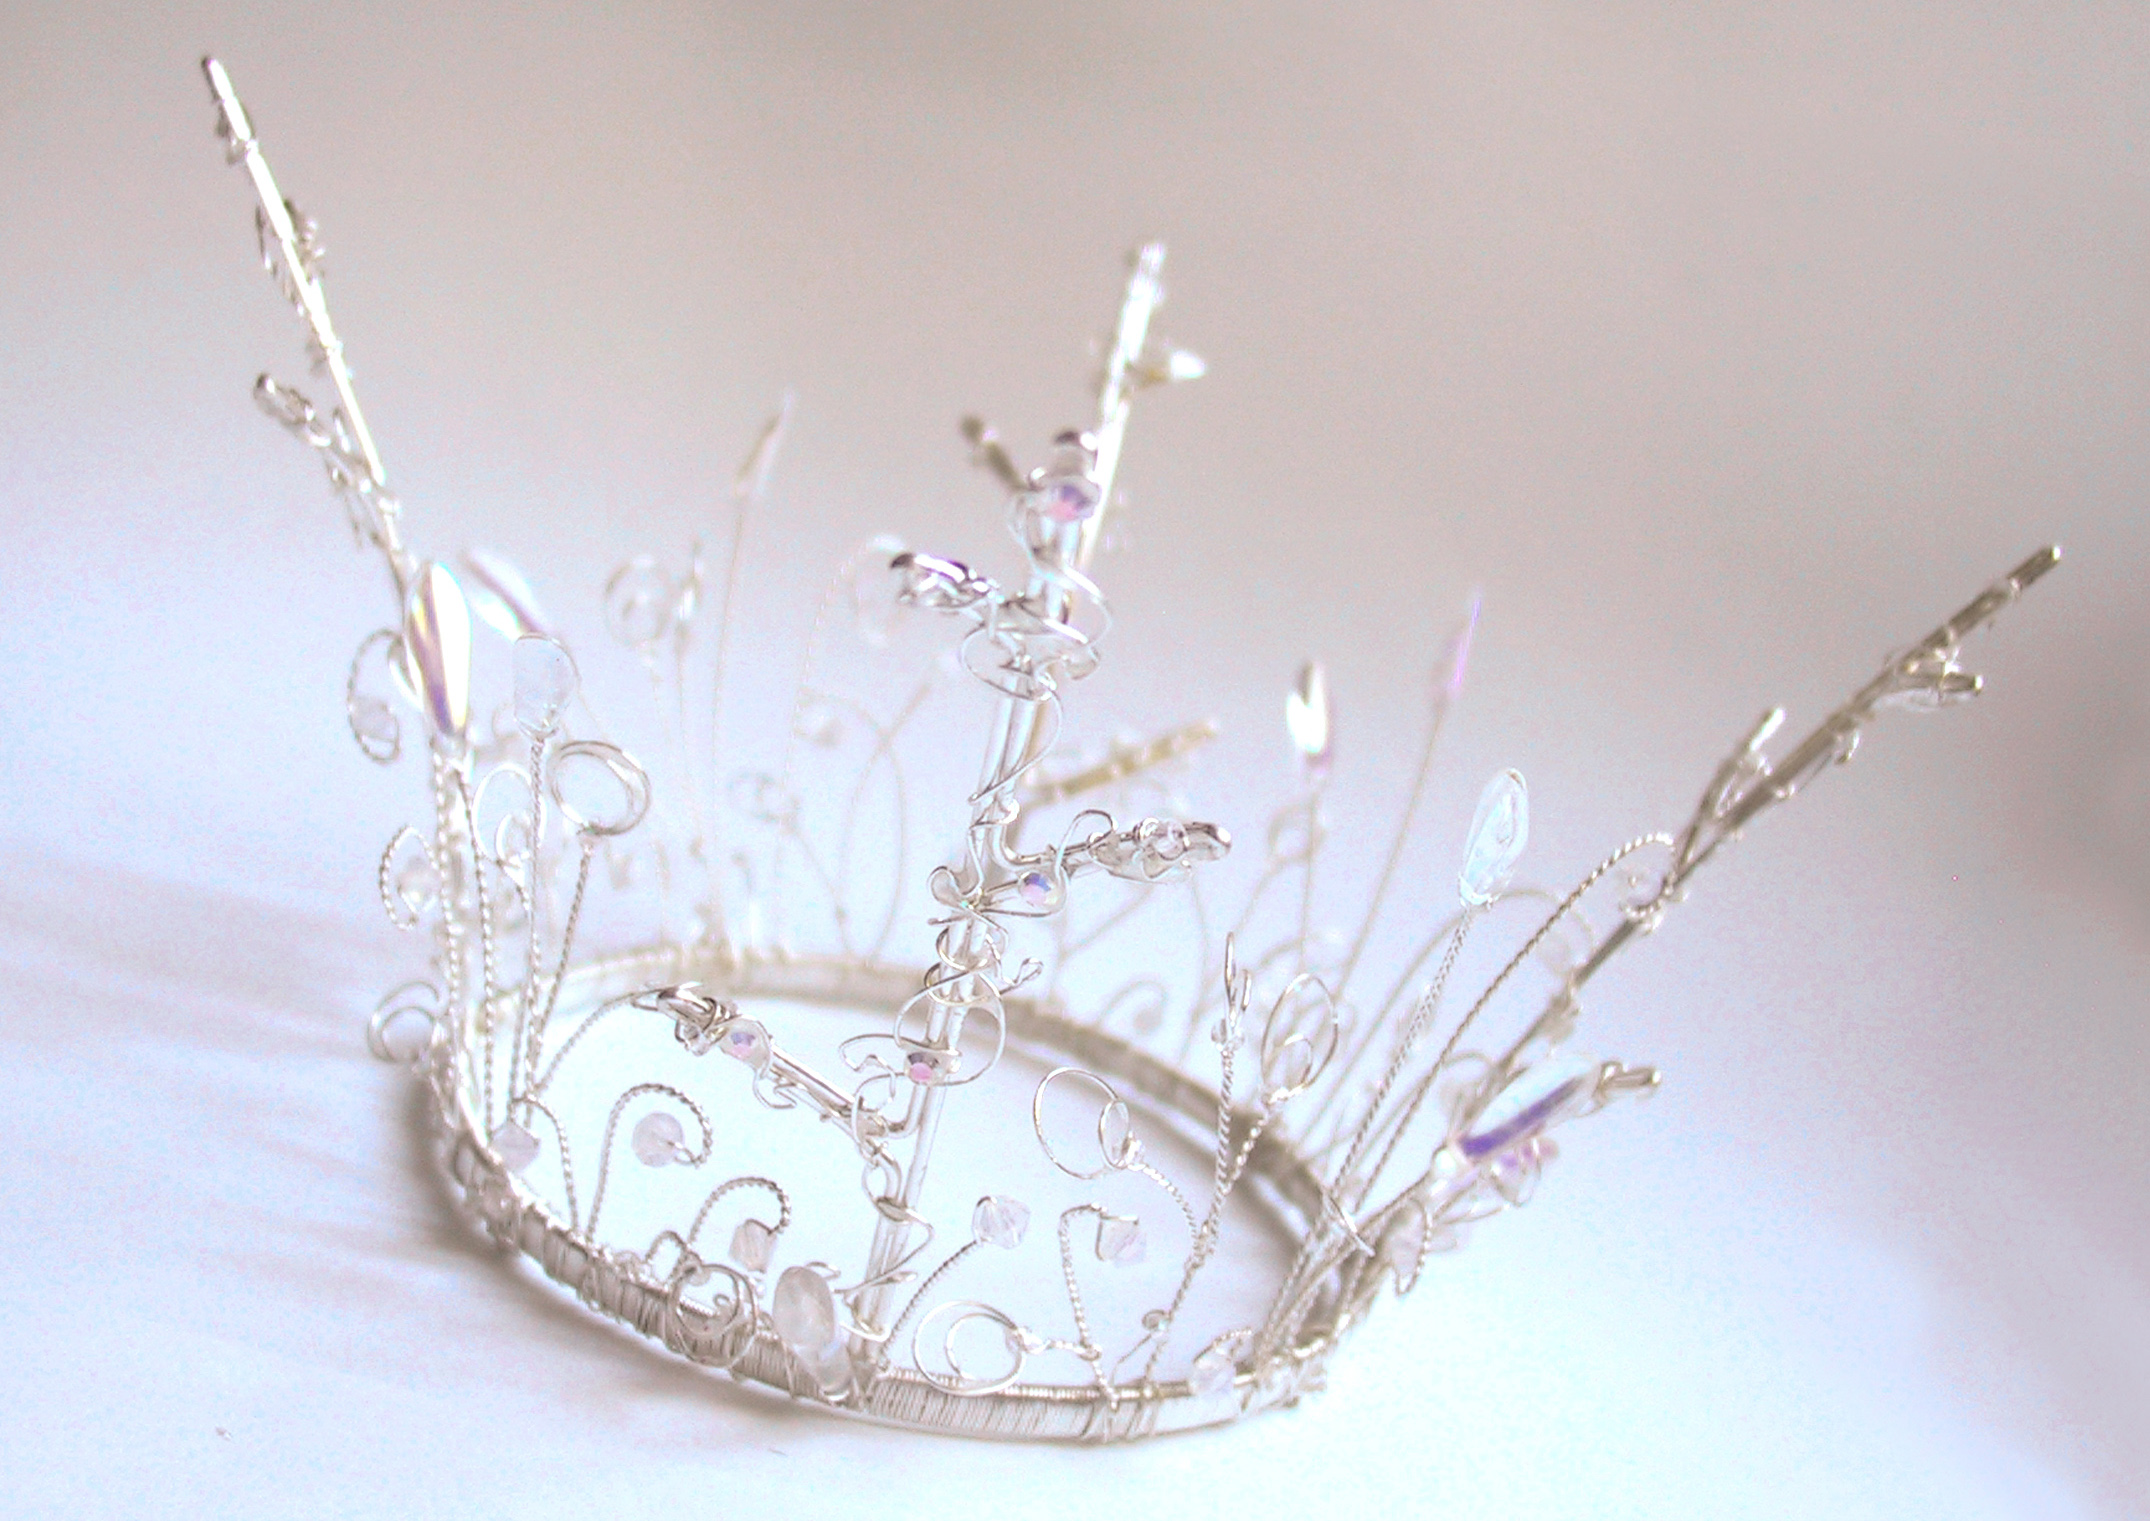 Silver Crystal Fantasy Crown from Chantal Mallett Wedding Accessories & Jewellery